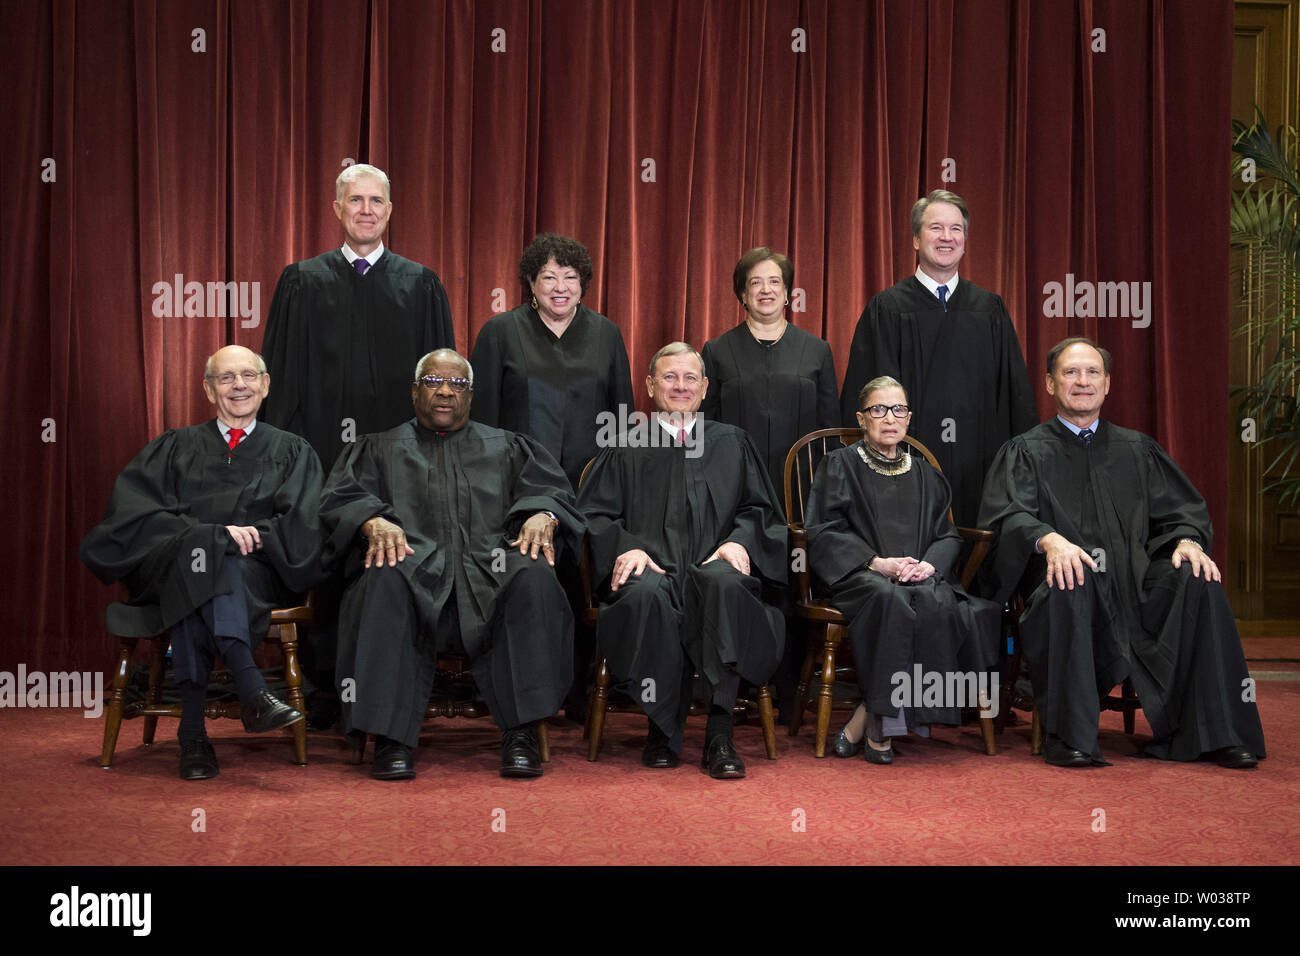 The Supreme Court Justices pose for their official group portrait in the Supreme Court on November 30, 2018 in Washington, D.C. Seated from left: Associate Justice Stephen Breyer, Associate Justice Clarence Thomas, Chief Justice John G. Roberts, Associate Justice Ruth Bader Ginsburg and Associate Justice Samuel Alito, Jr. Standing behind from left: Associate Justice Neil Gorsuch, Associate Justice Sonia Sotomayor, Associate Justice Elena Kagan and Associate Justice Brett M. Kavanaugh. Photo by Kevin Dietsch/UPI - Stock Image